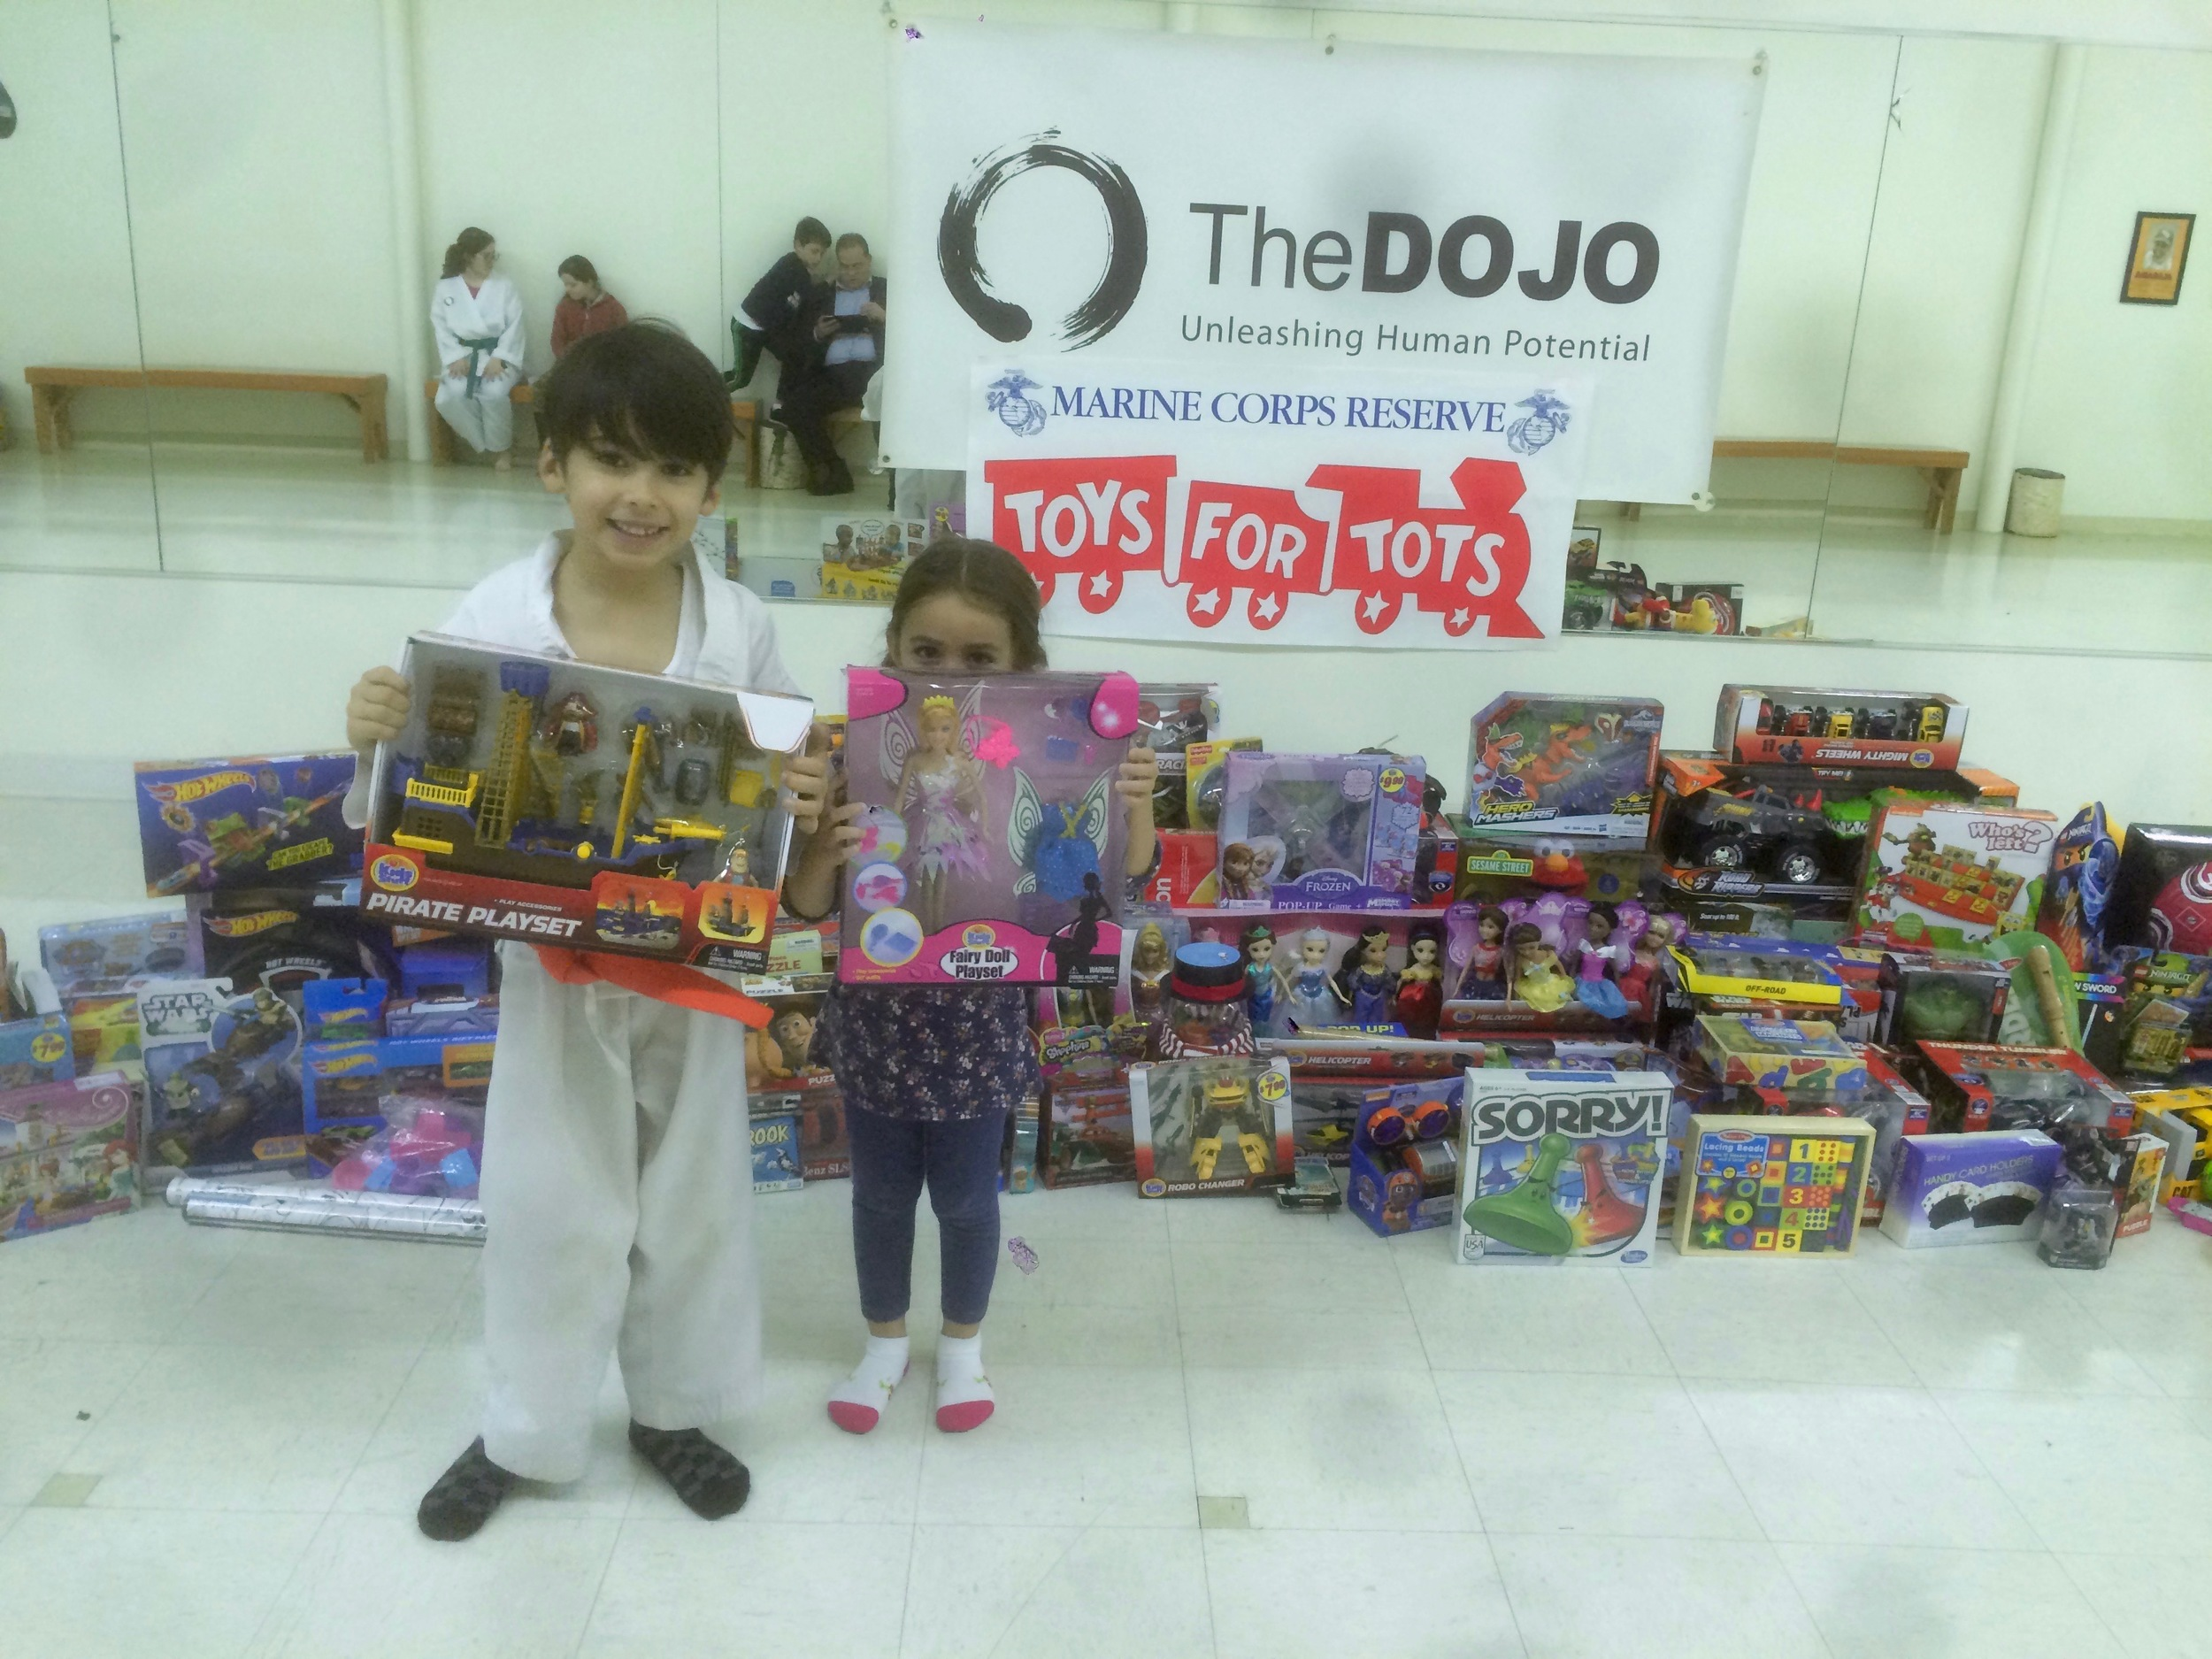 toys-for-tots---thedojo-toy-drive_23203018023_o.jpg